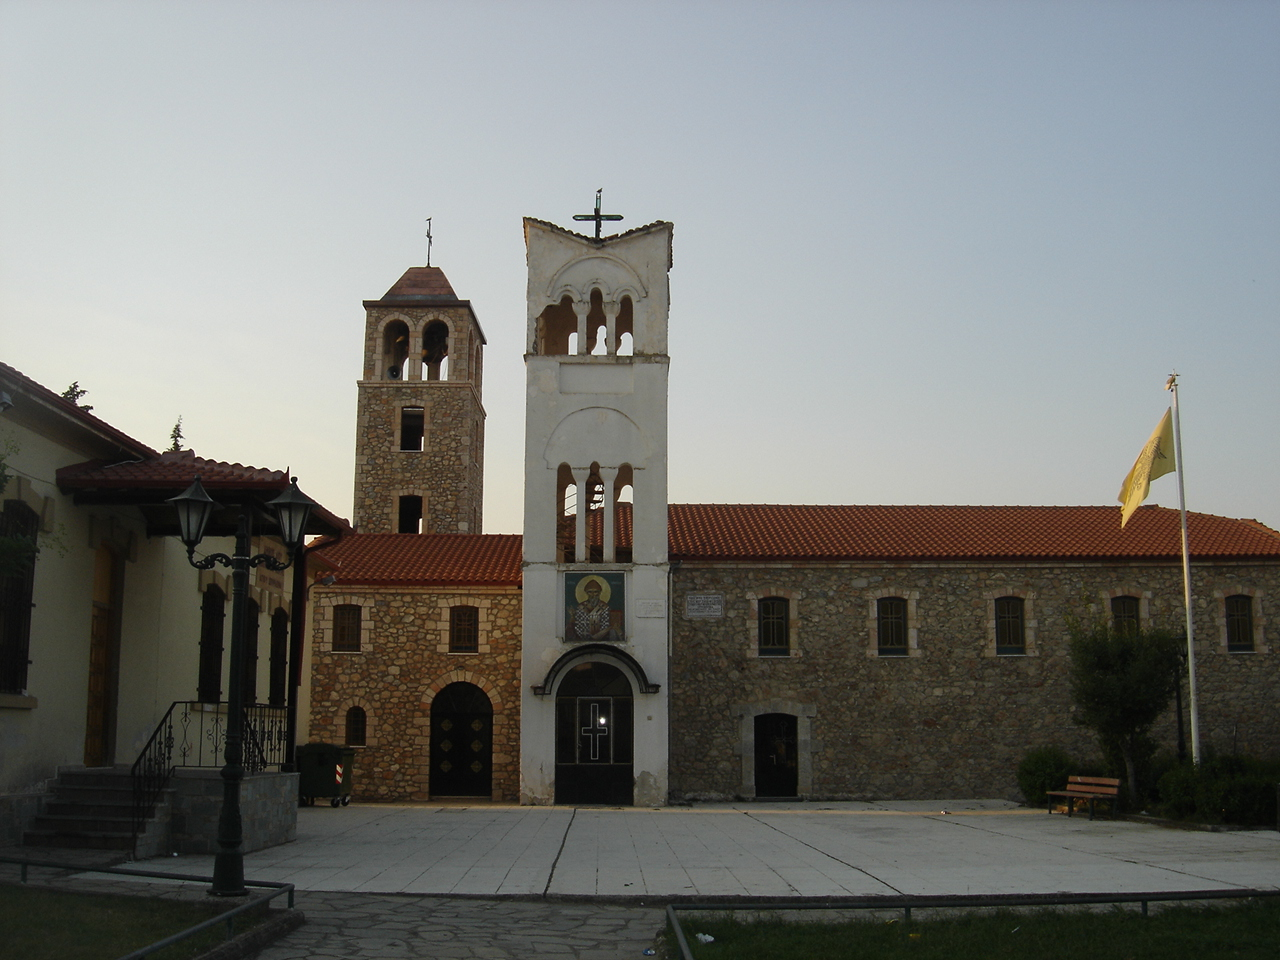 http://upload.wikimedia.org/wikipedia/commons/4/48/Agios_spiridon_main_church.jpg